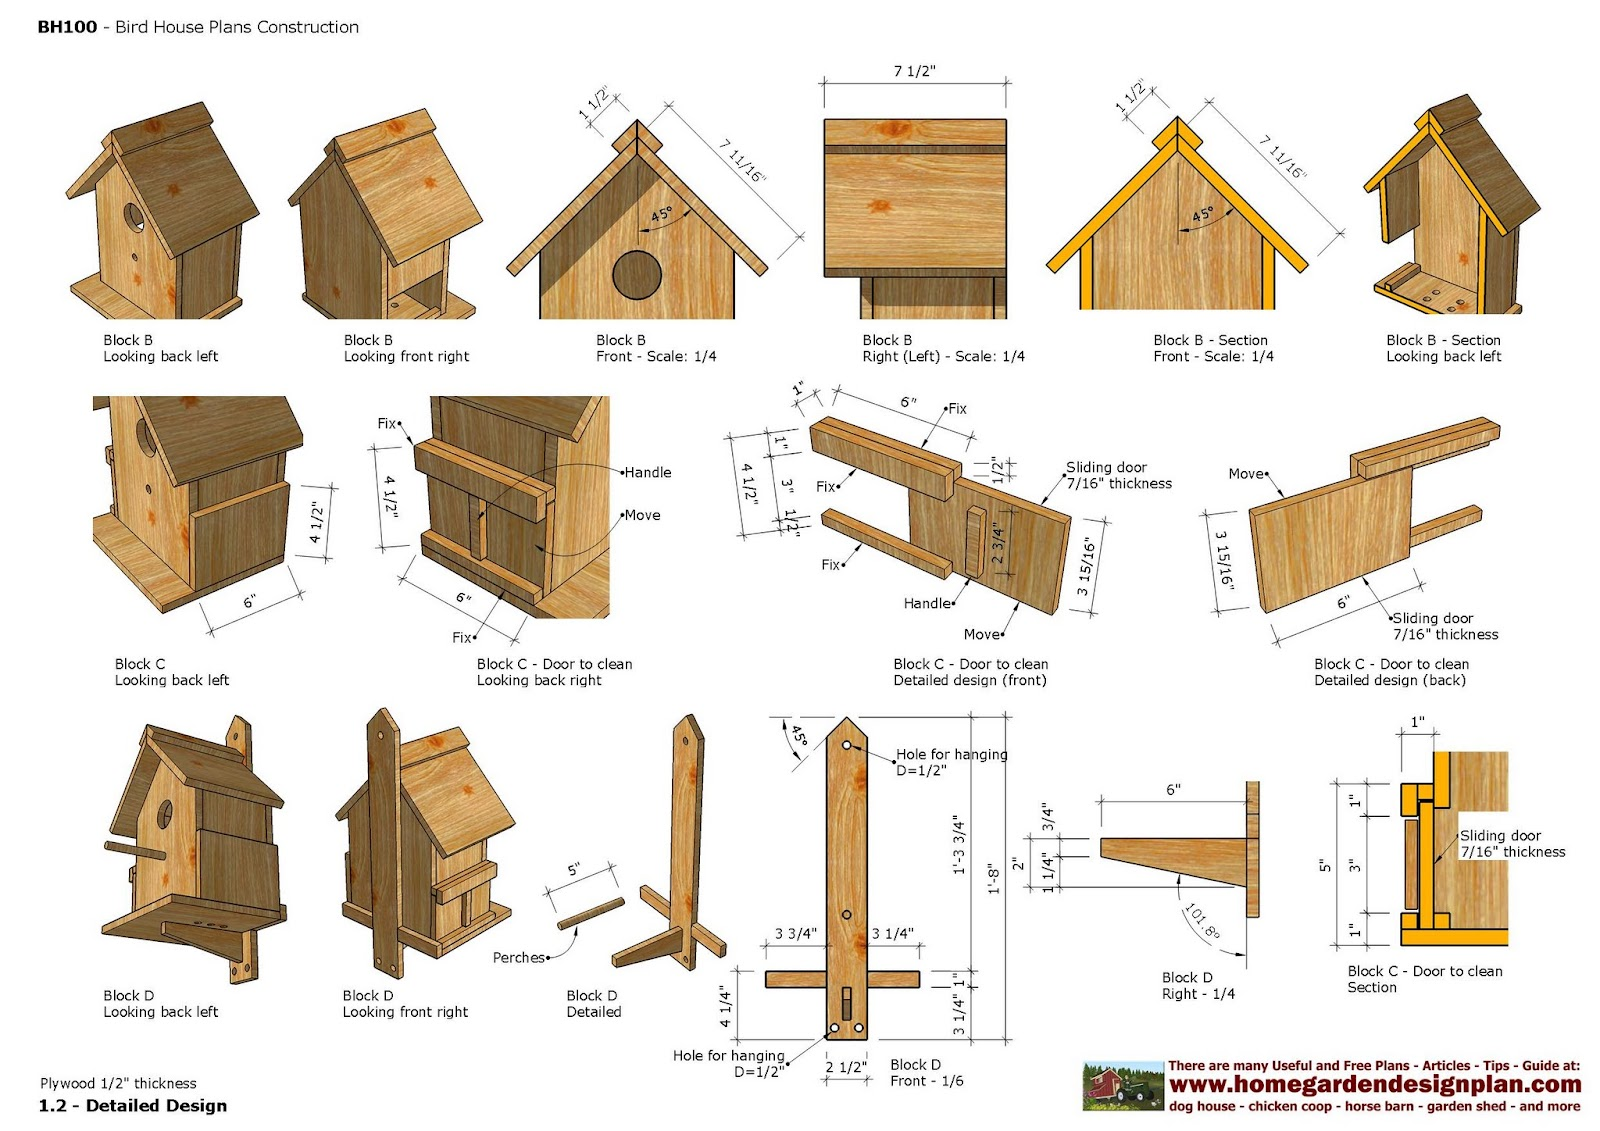 Home garden plans bh bird house plans construction for House layout plans